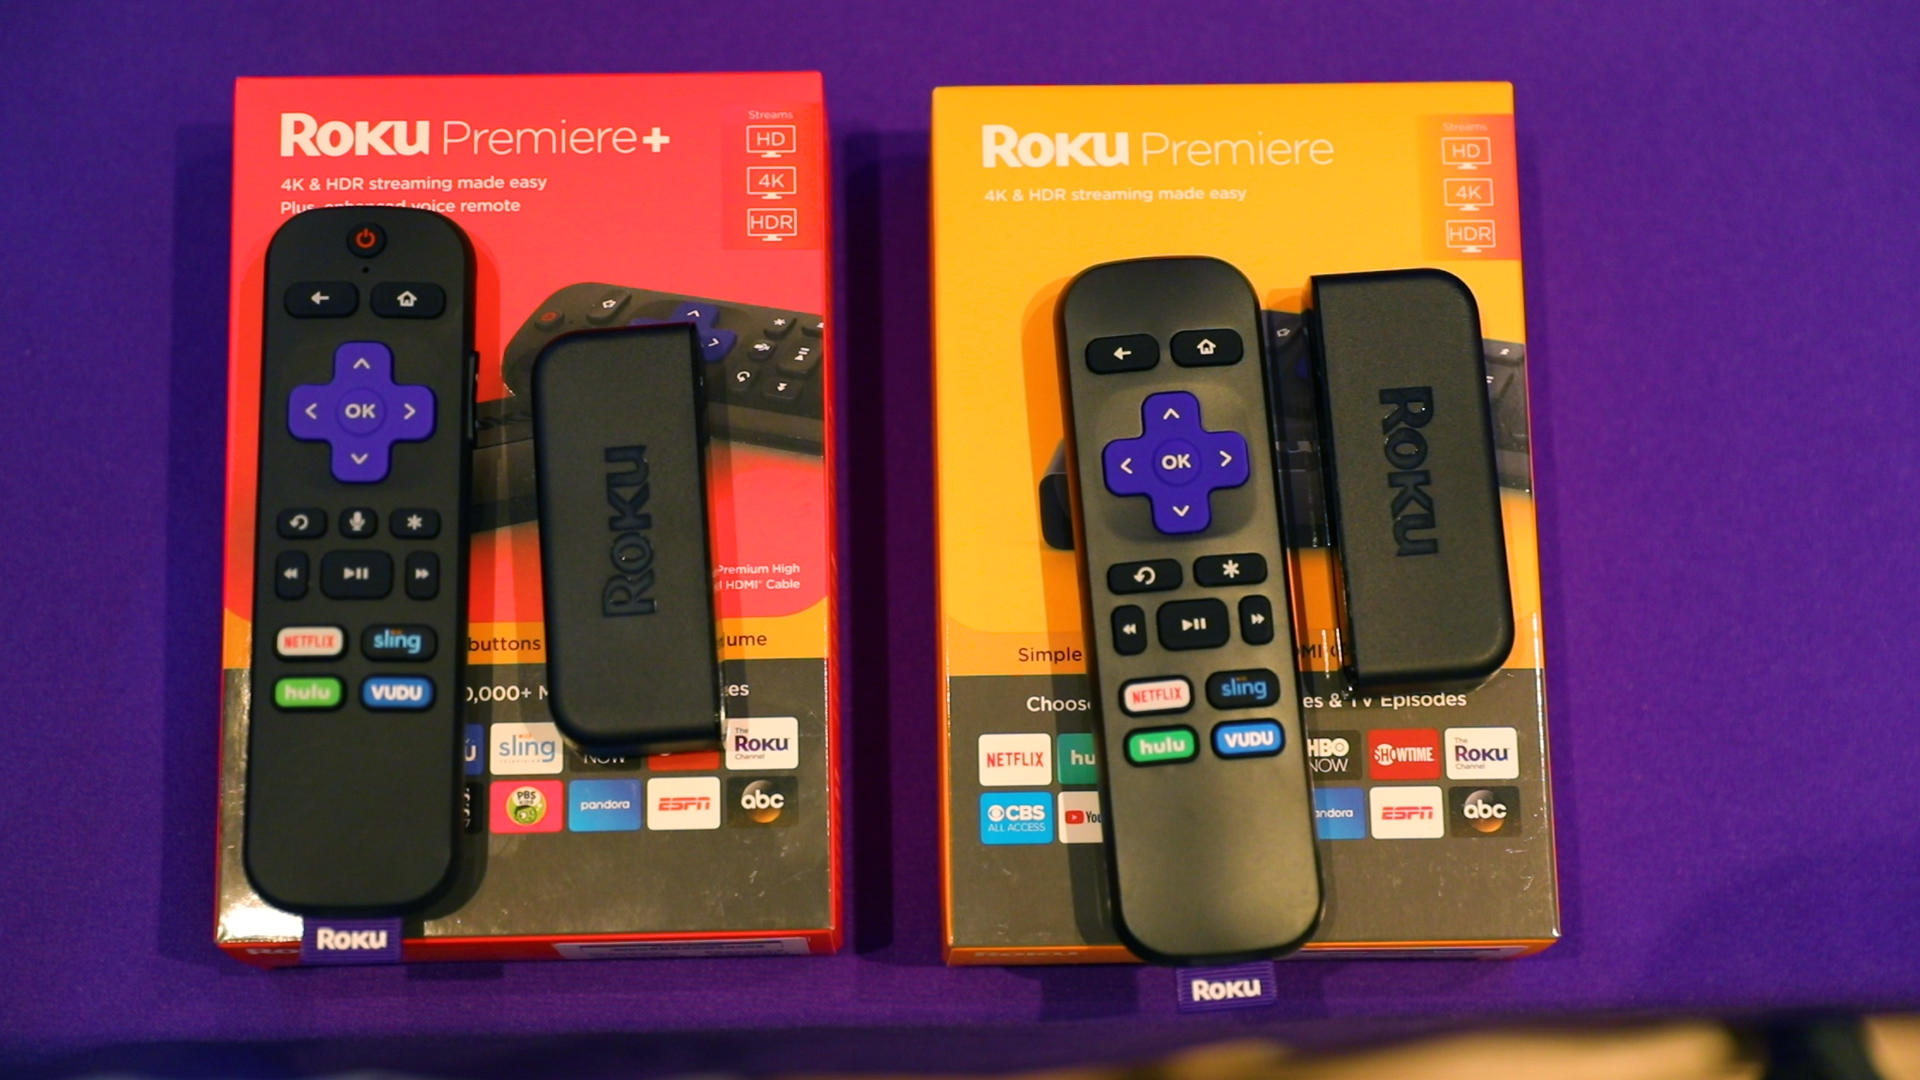 Video: Roku's new streamers start at $40 for 4K HDR